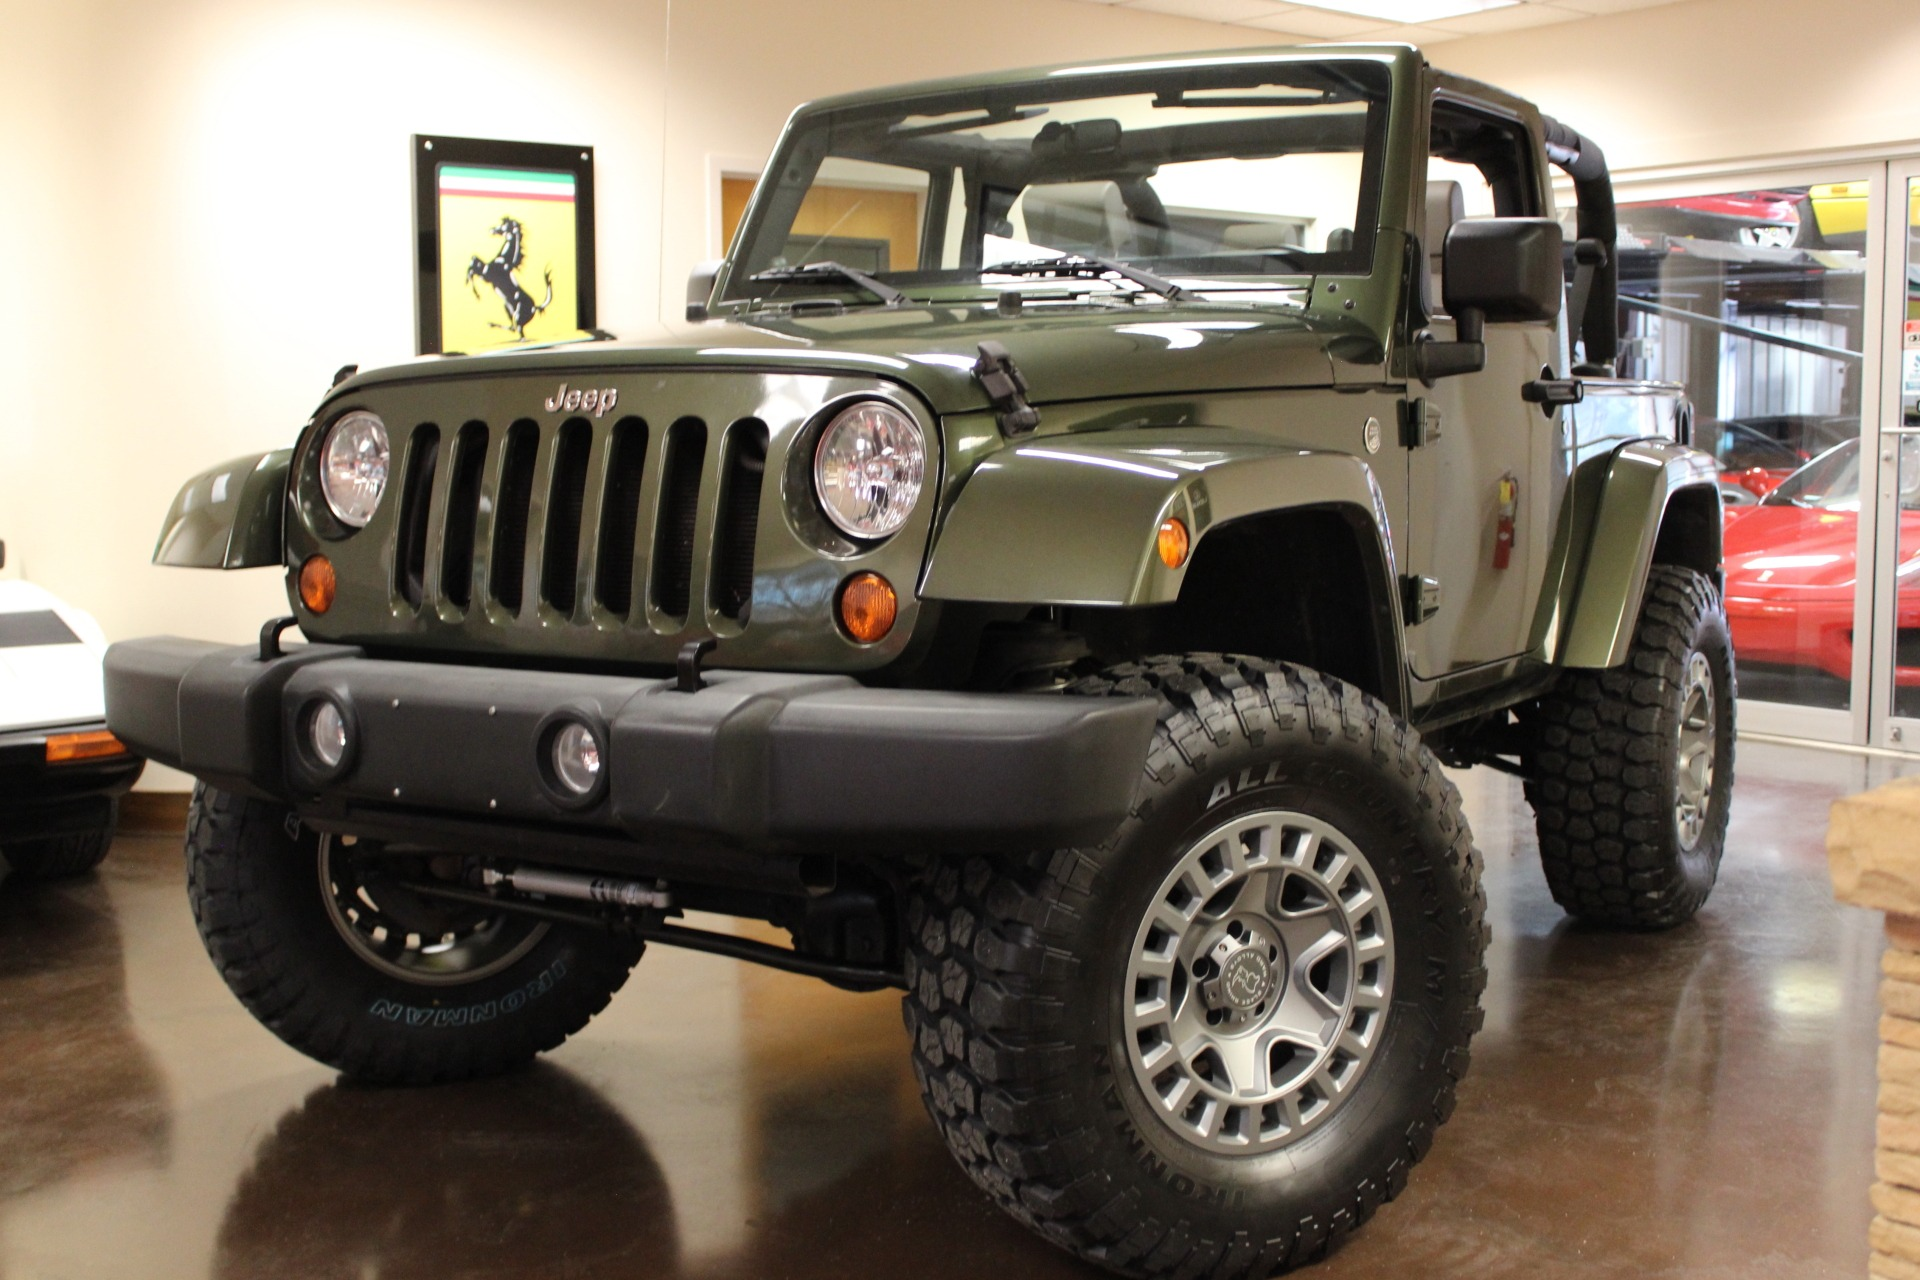 Used 2007 Jeep Wrangler stock P4049A Ultra Luxury Car from Merlin